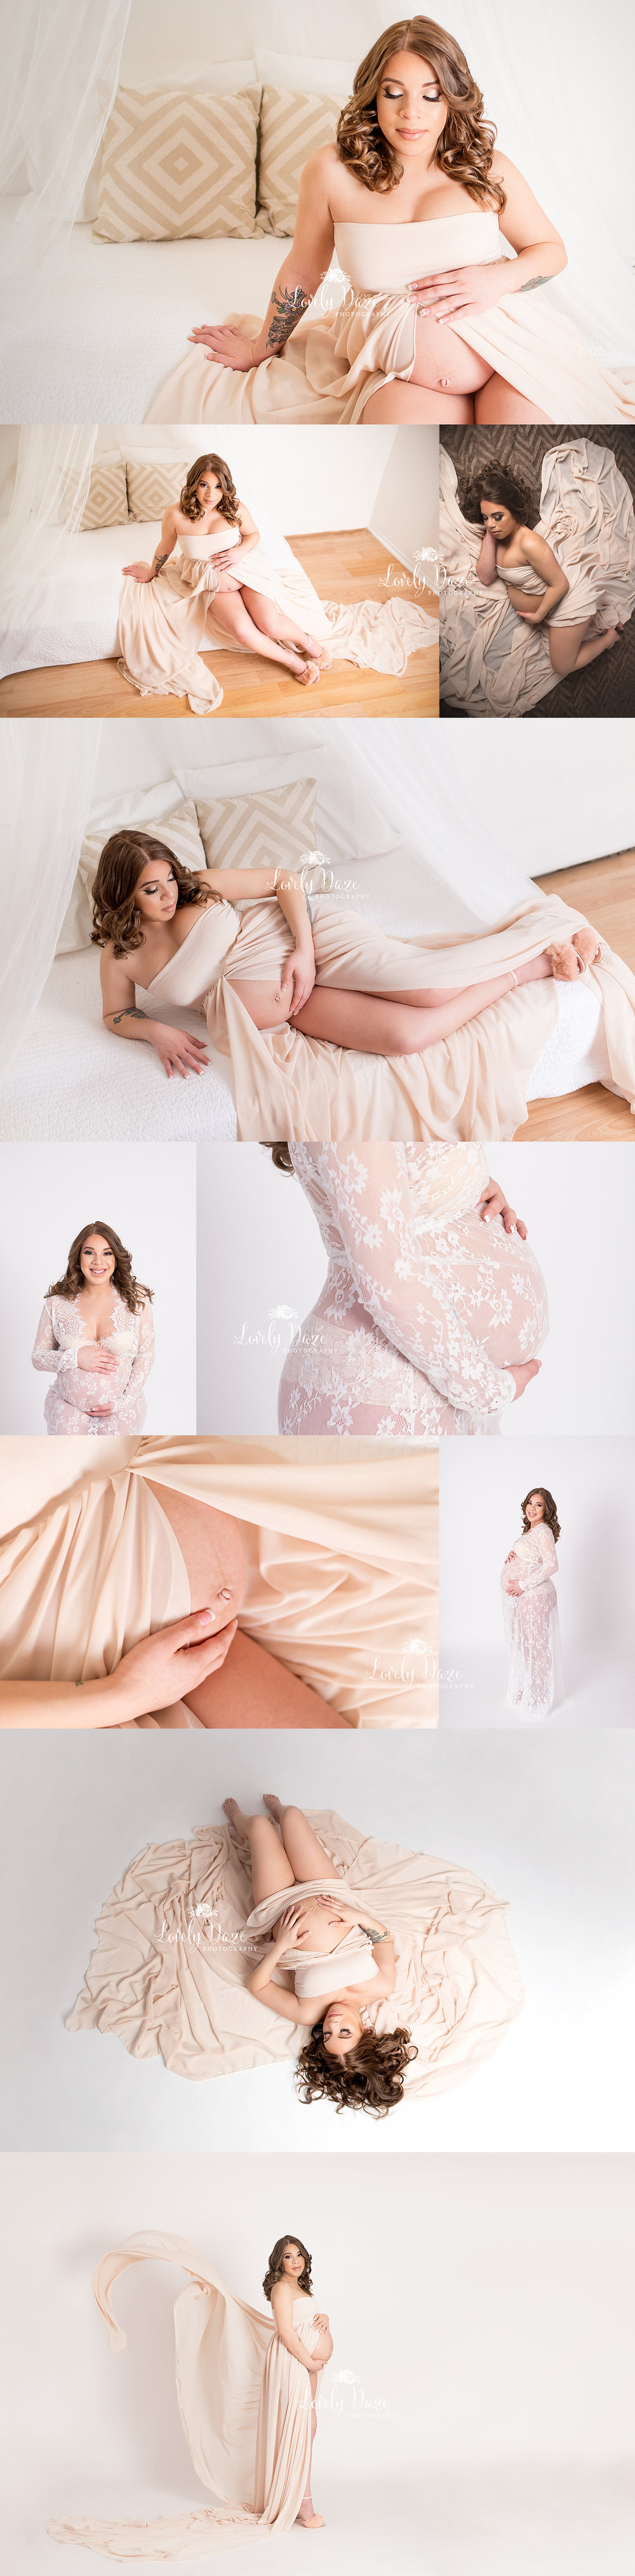 best NJ maternity photographer indoor photoshoot , studio maternity session lovely daze photography copy.jpg